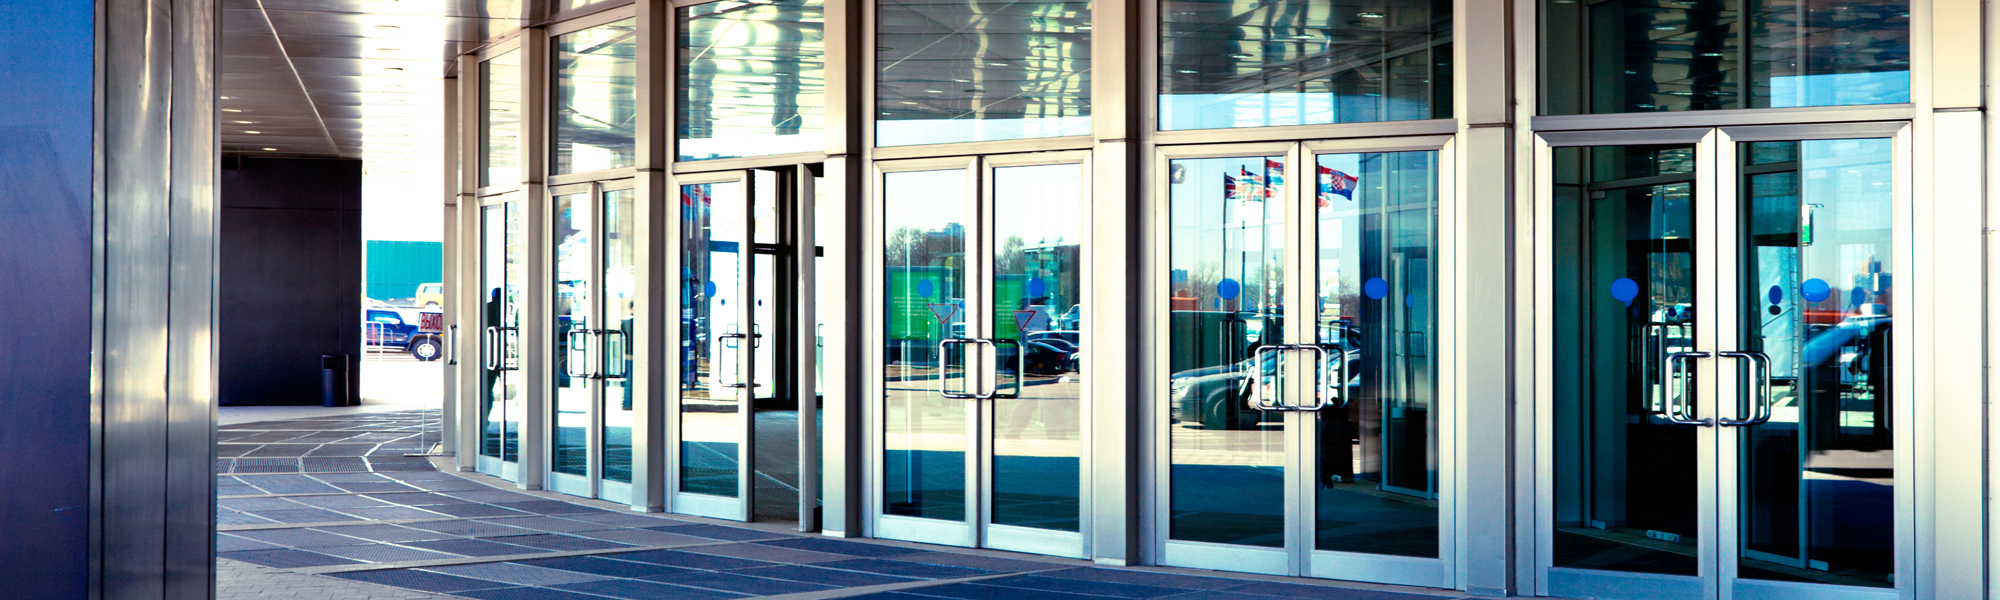 Entry Doors, Safety Glass | ARC Glass Houston, TX